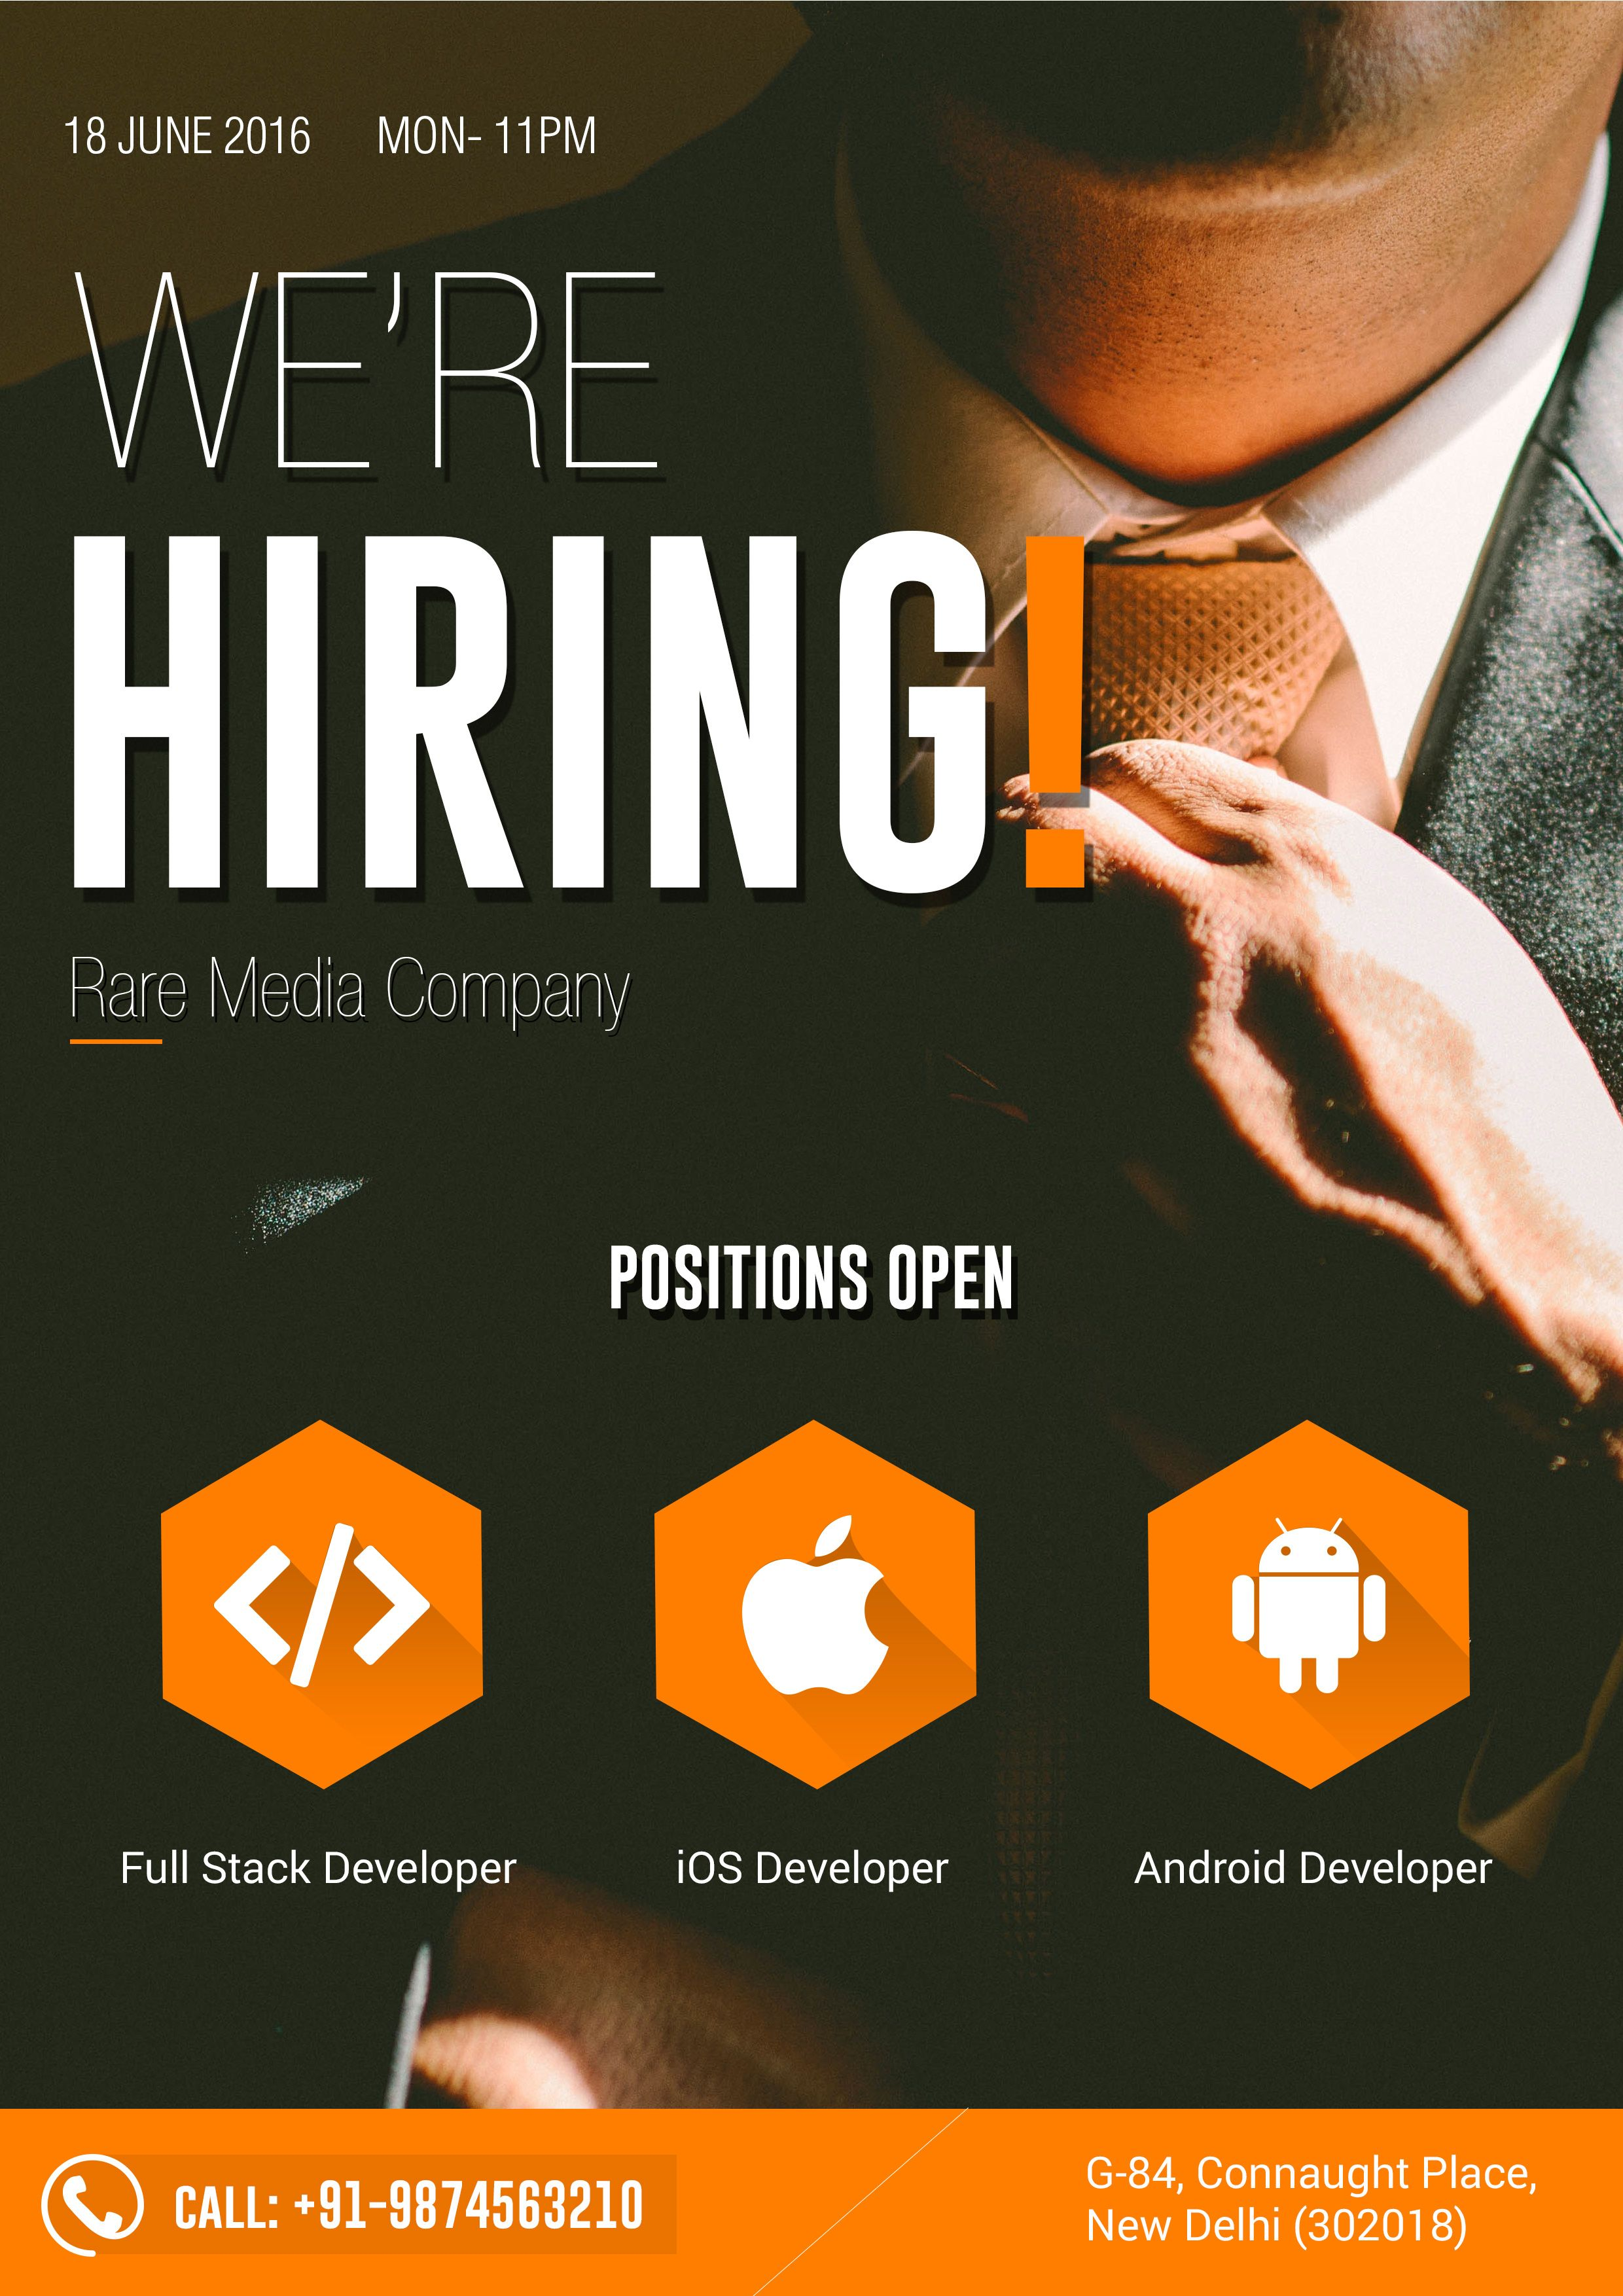 Flyer Design for Hiring ... | Graphic Design | Pinterest | Hiring ...